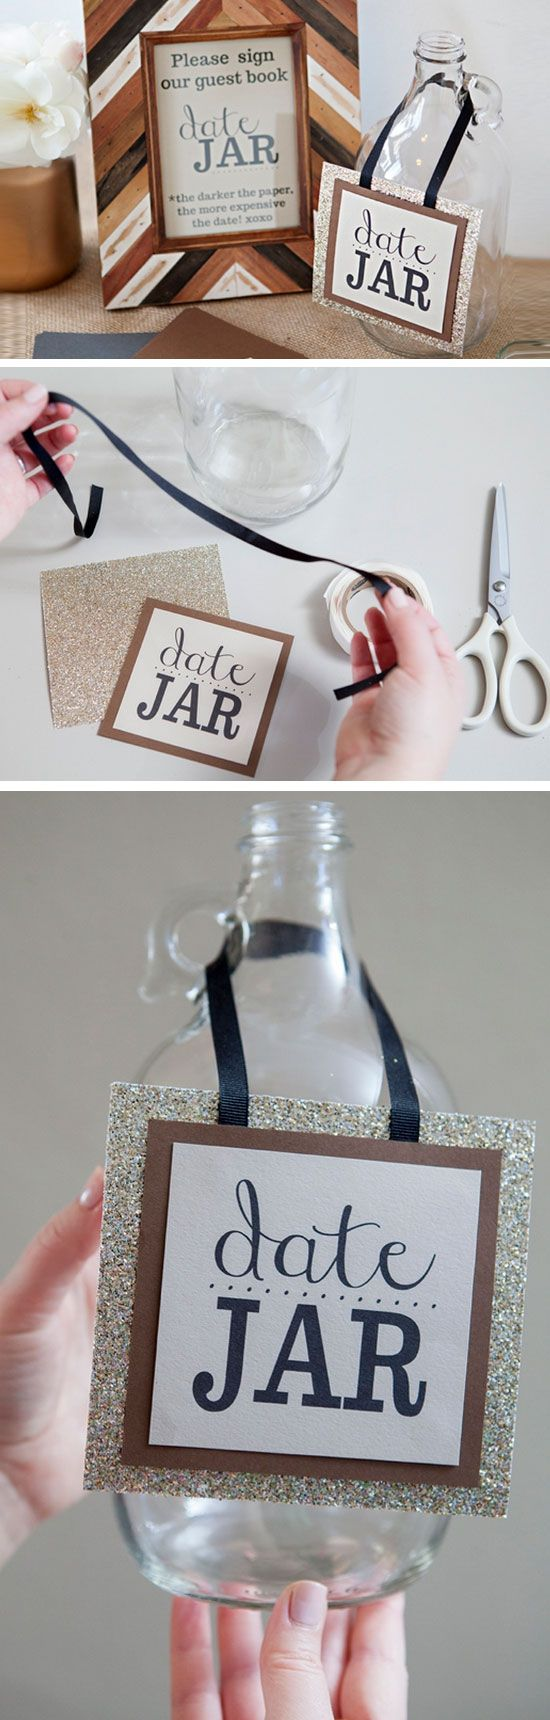 Date Jar Guest Book | Click Pic for 18 DIY Date Night in a Jar Ideas | Creative Valentines Day Gifts for Him